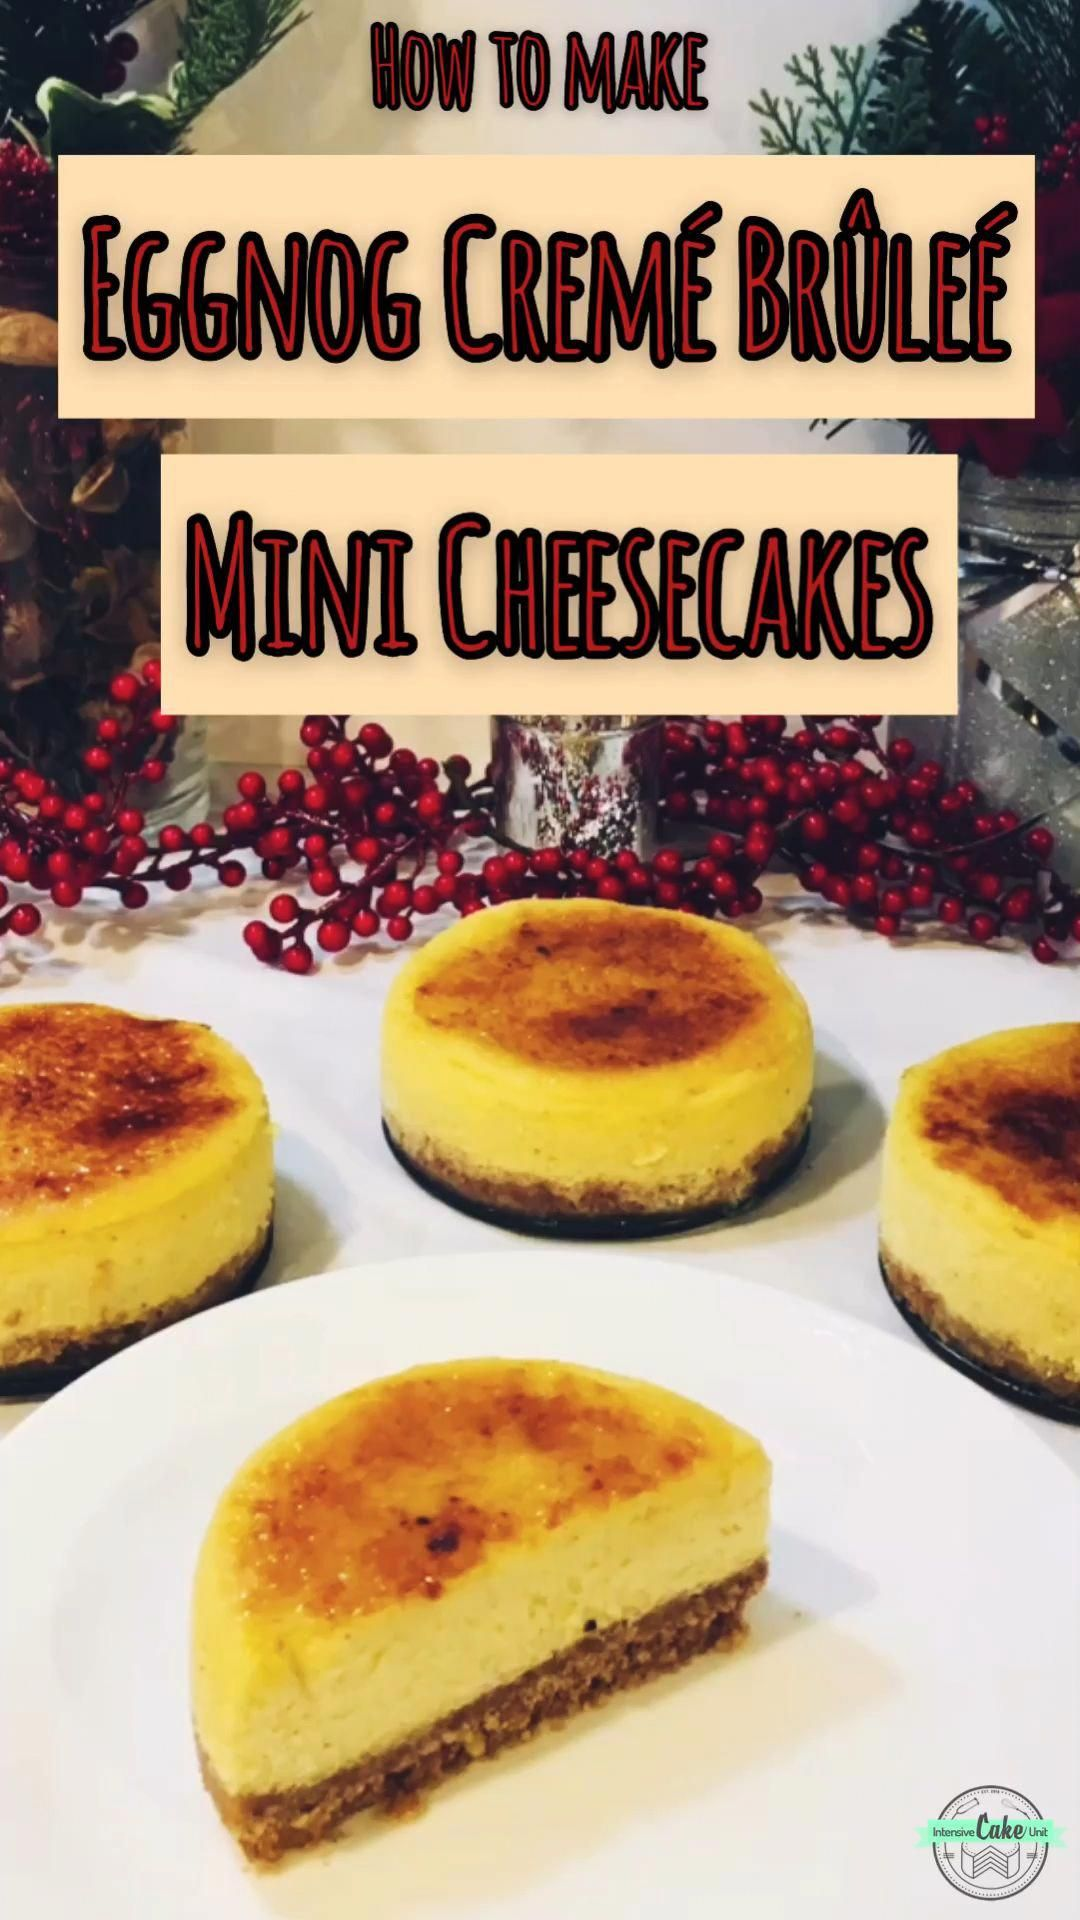 Easy and decadent Christmastime dessert - creamy eggnog #cheesecake pairs beautifully with a ginger snap crust and brûléed sugar topping! ❤️